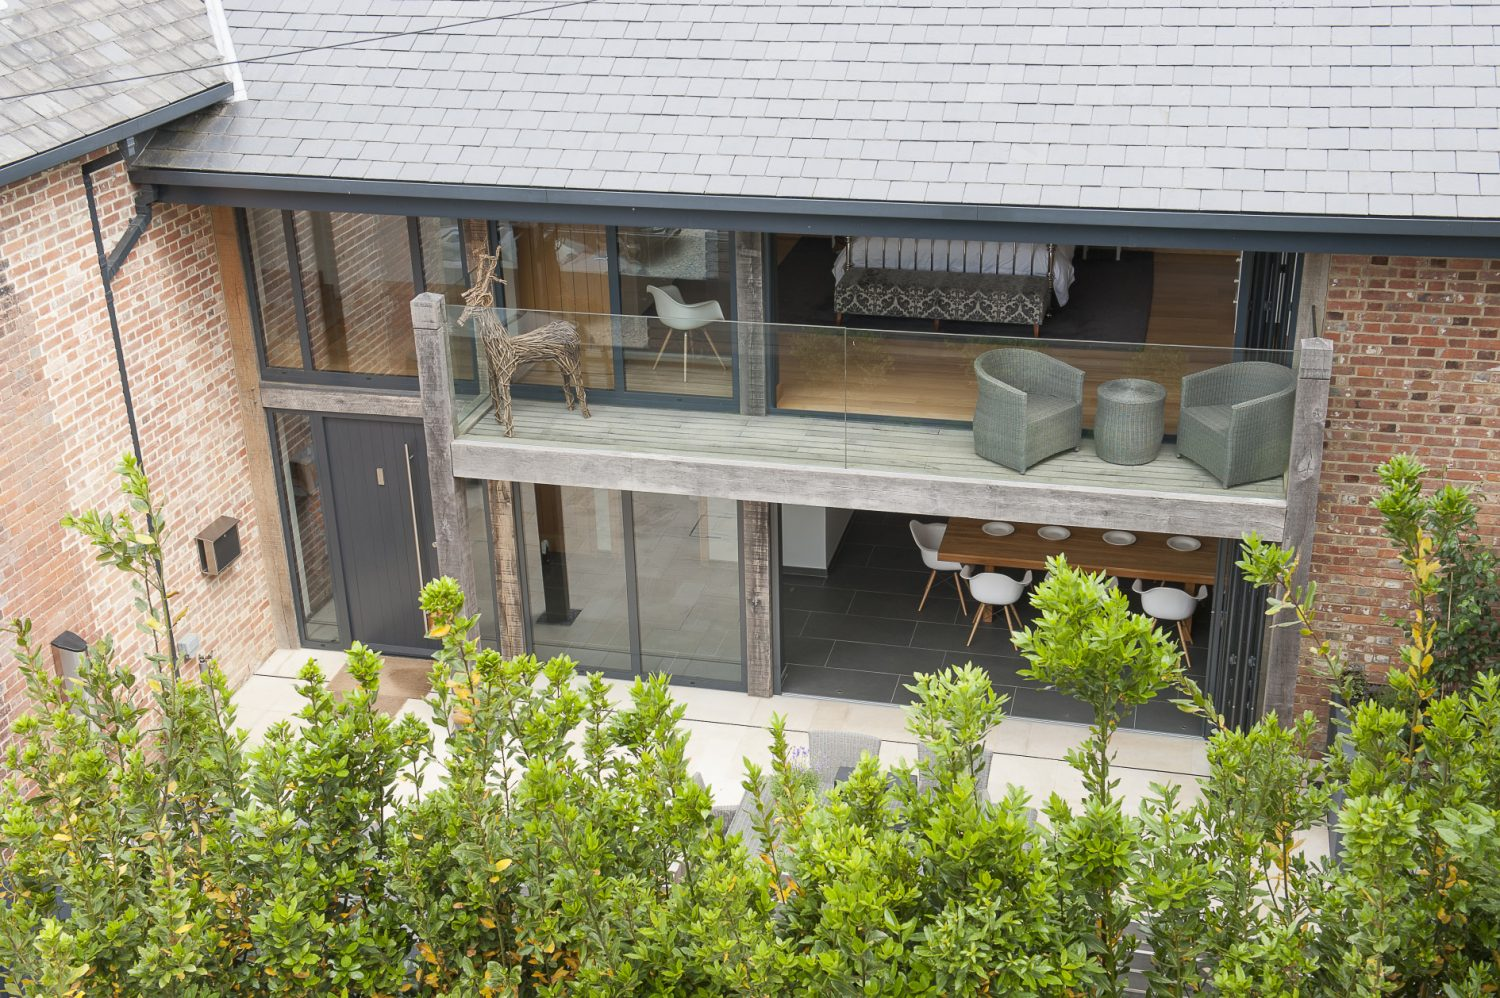 The design makes the most of the outside space